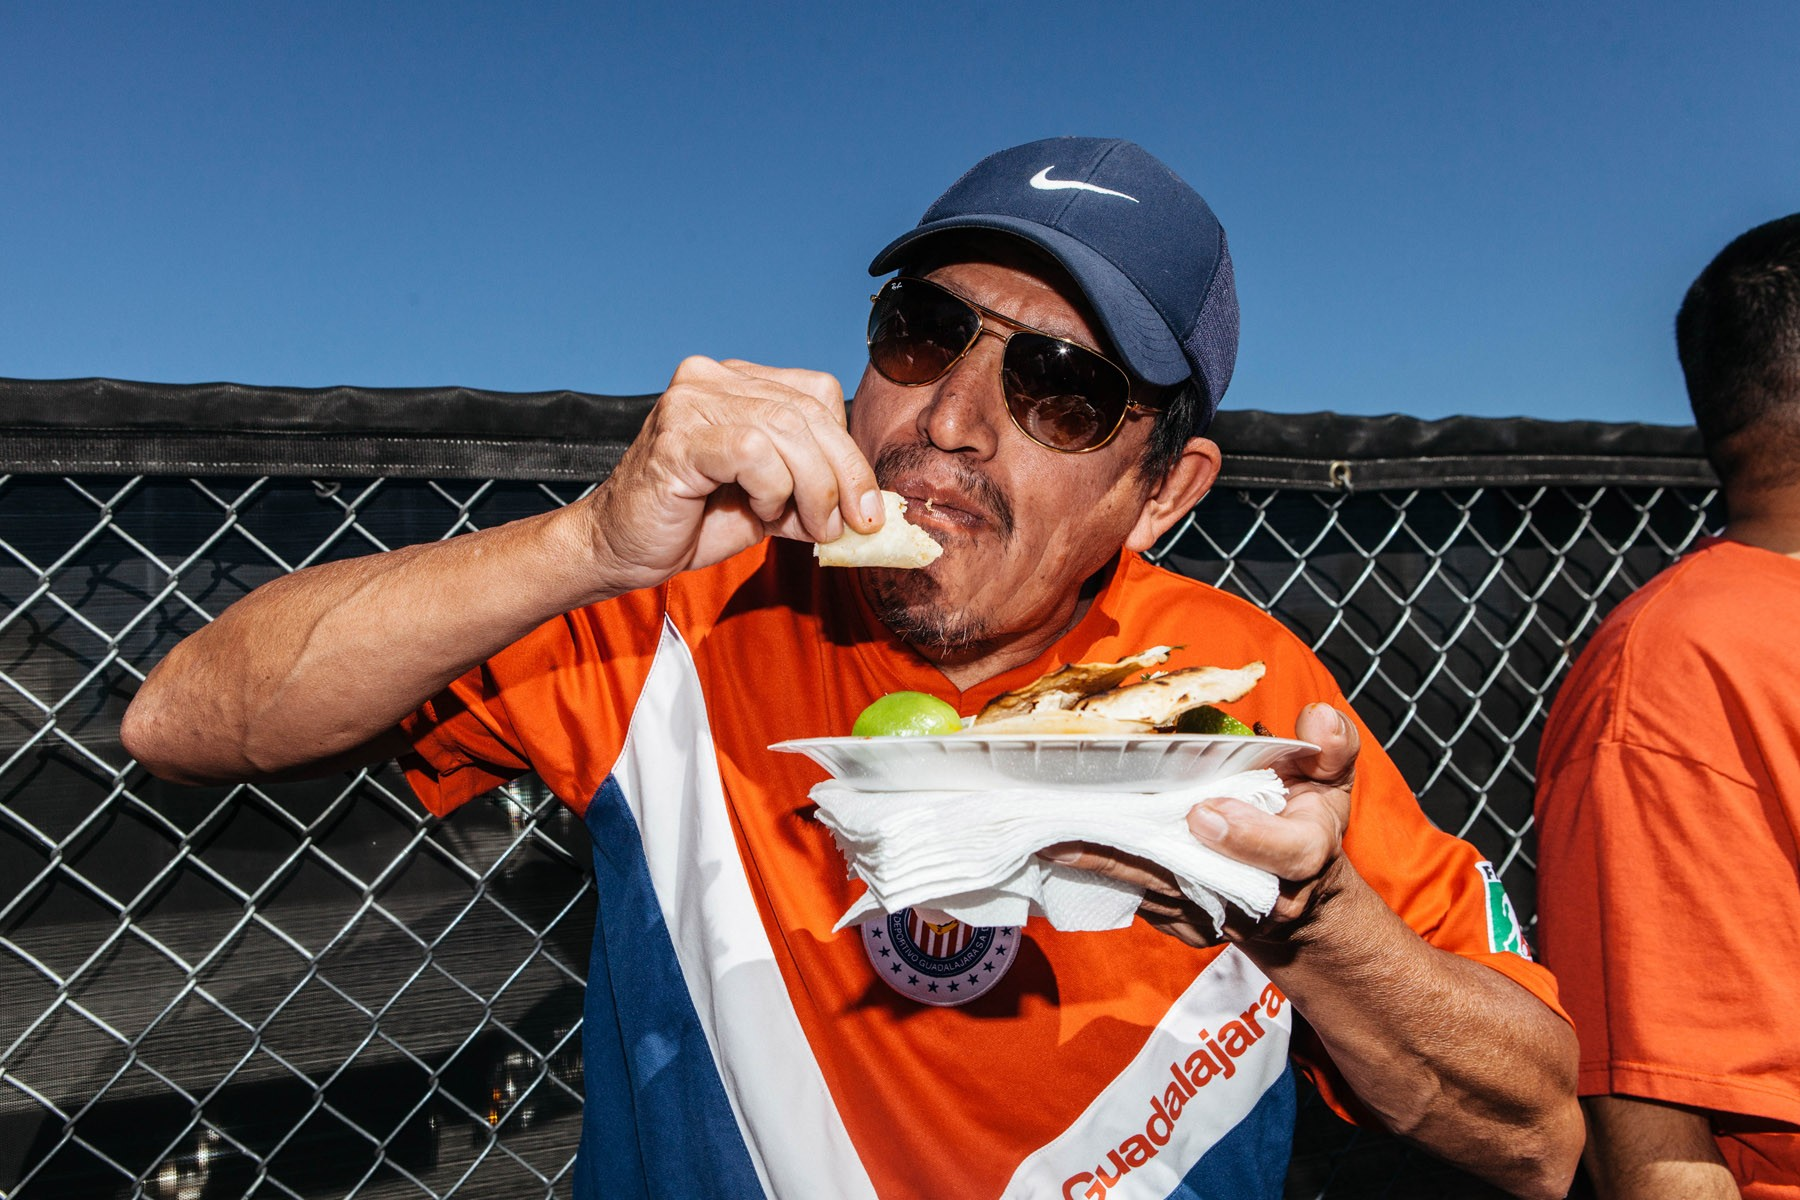 Culinary Union Member Javier Zamudio Cruz eats a taco.